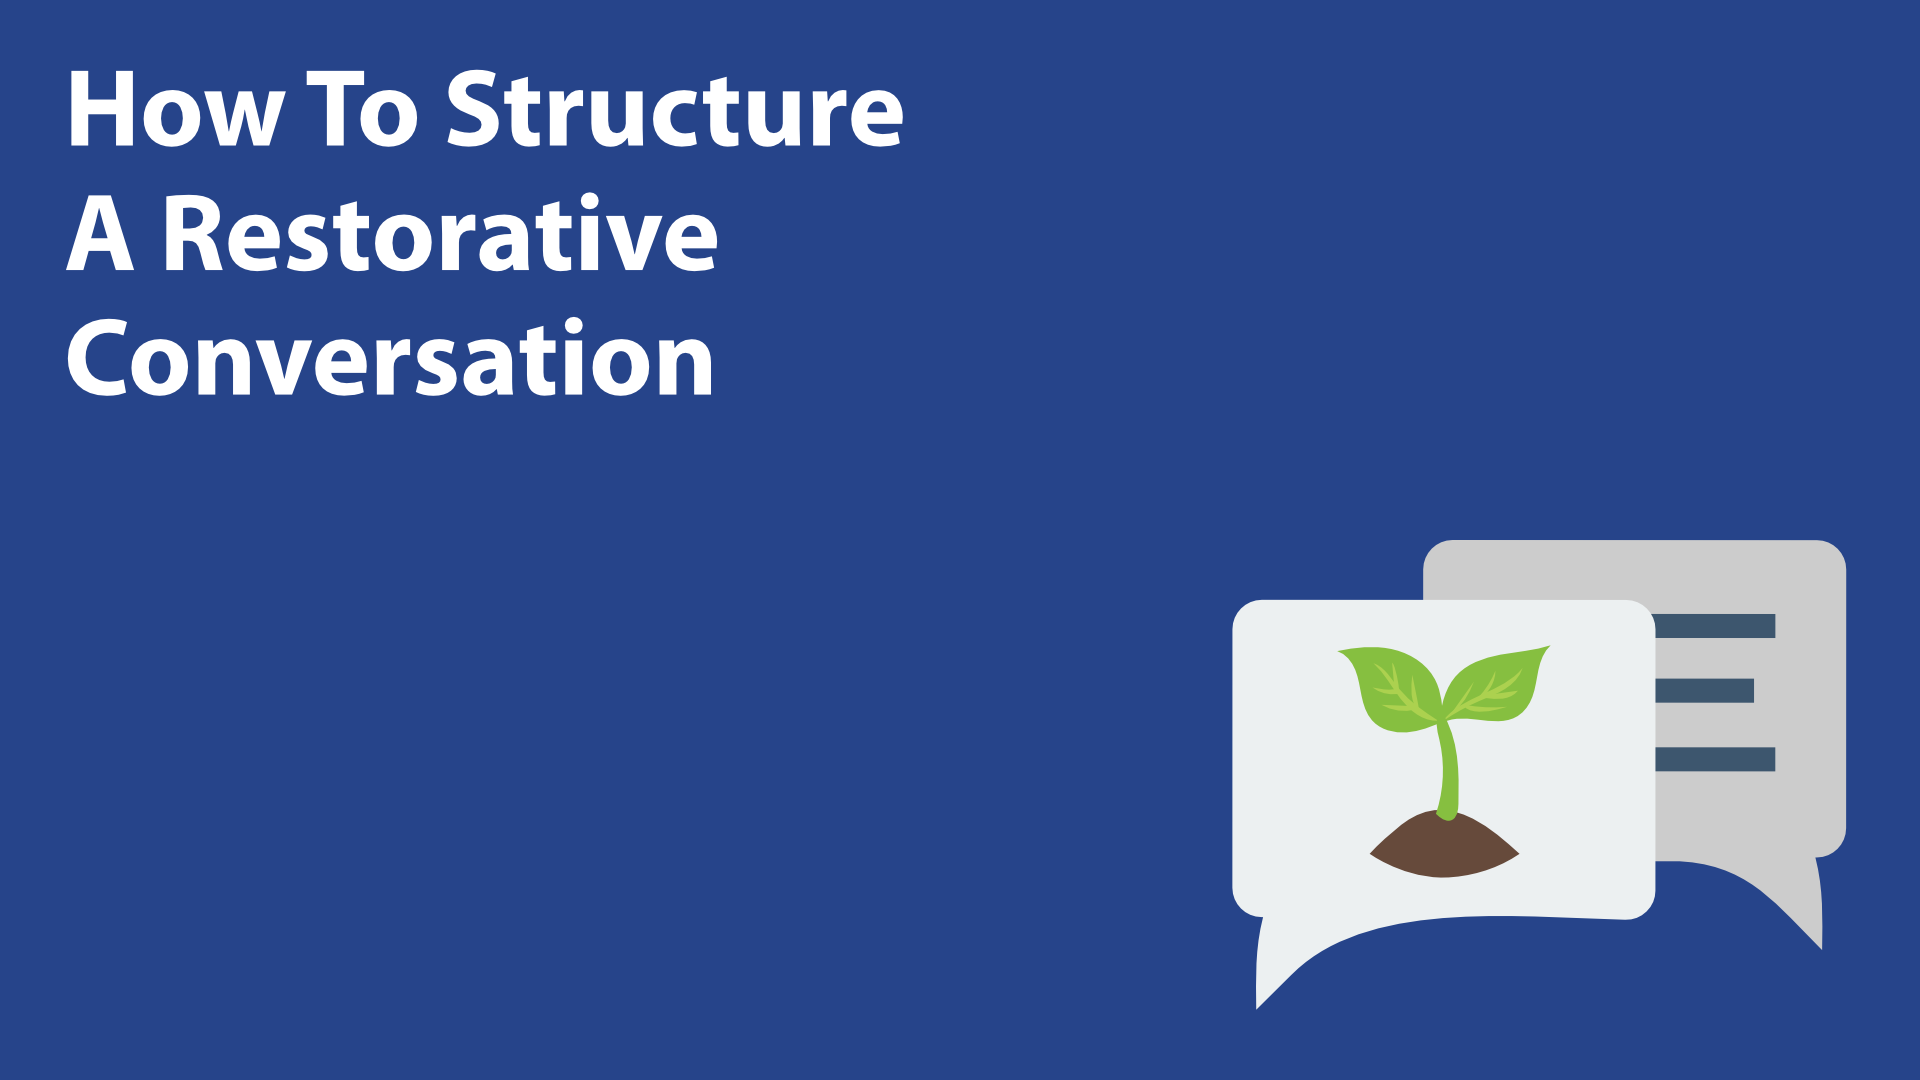 How To Structure A Restorative Conversation image